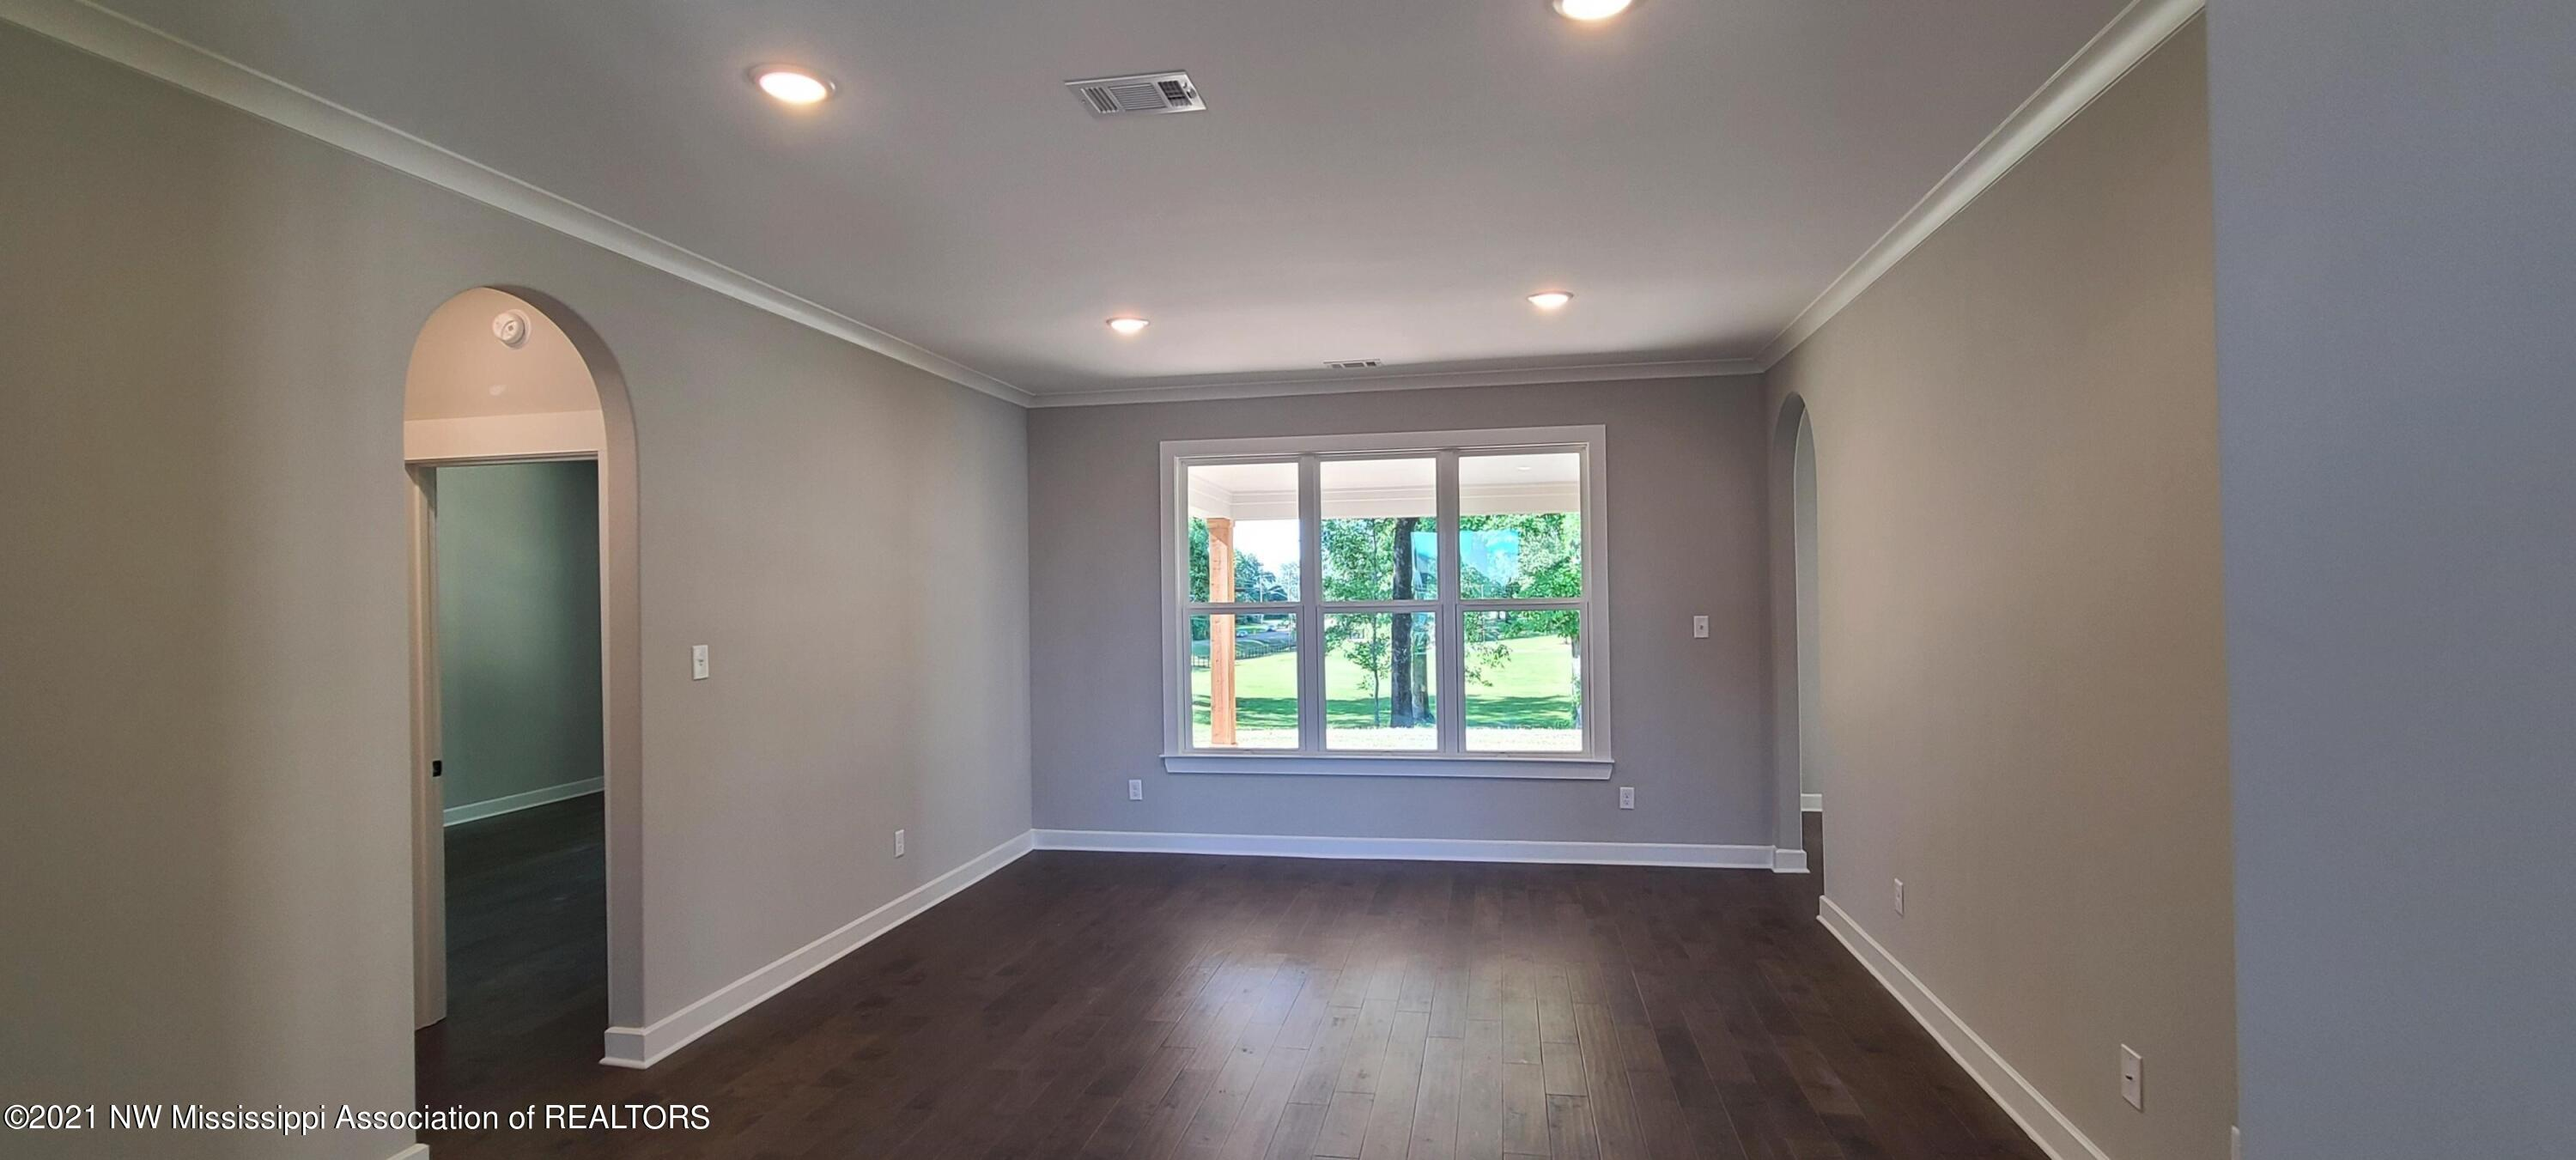 Family Room to MBR